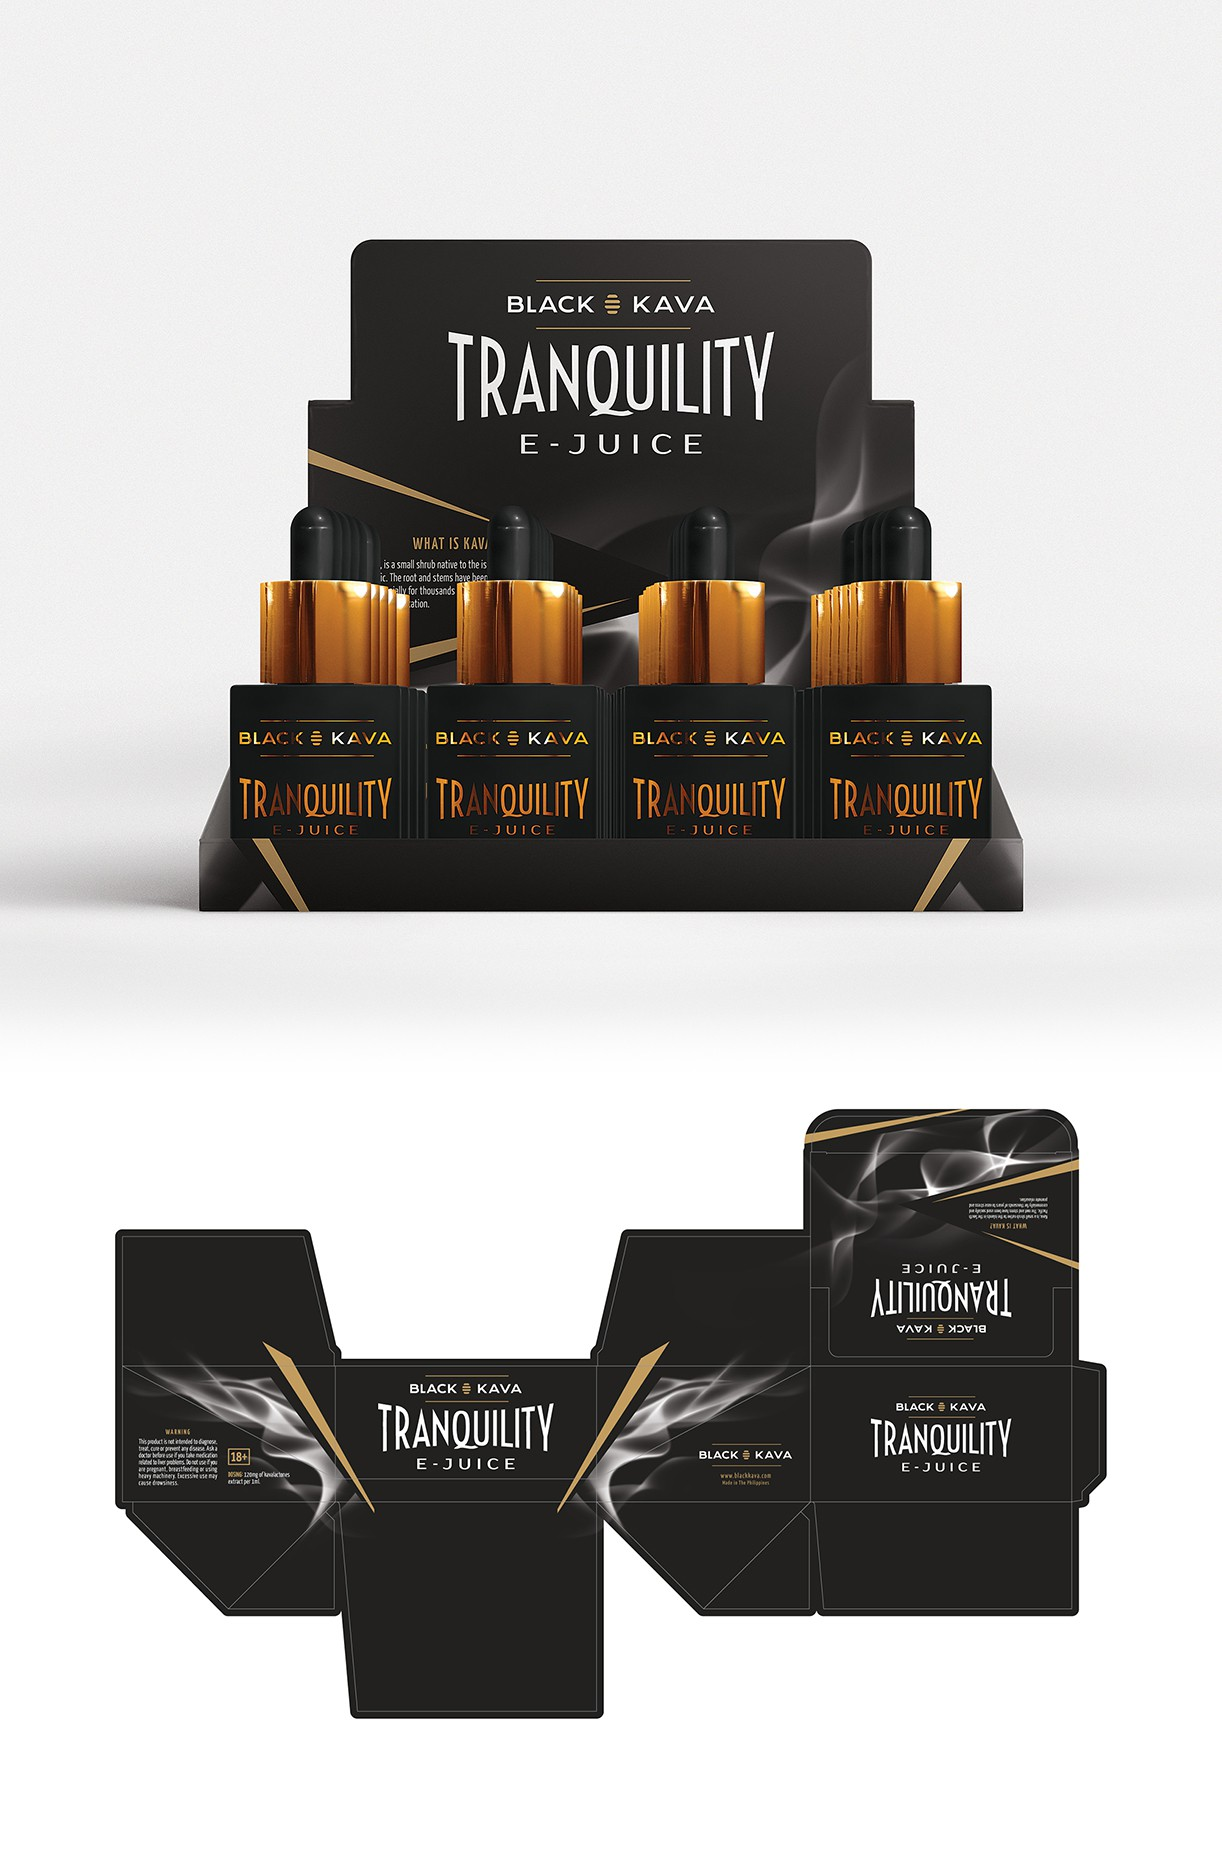 Tranquility, Black Kava and Instant Kava packaging design